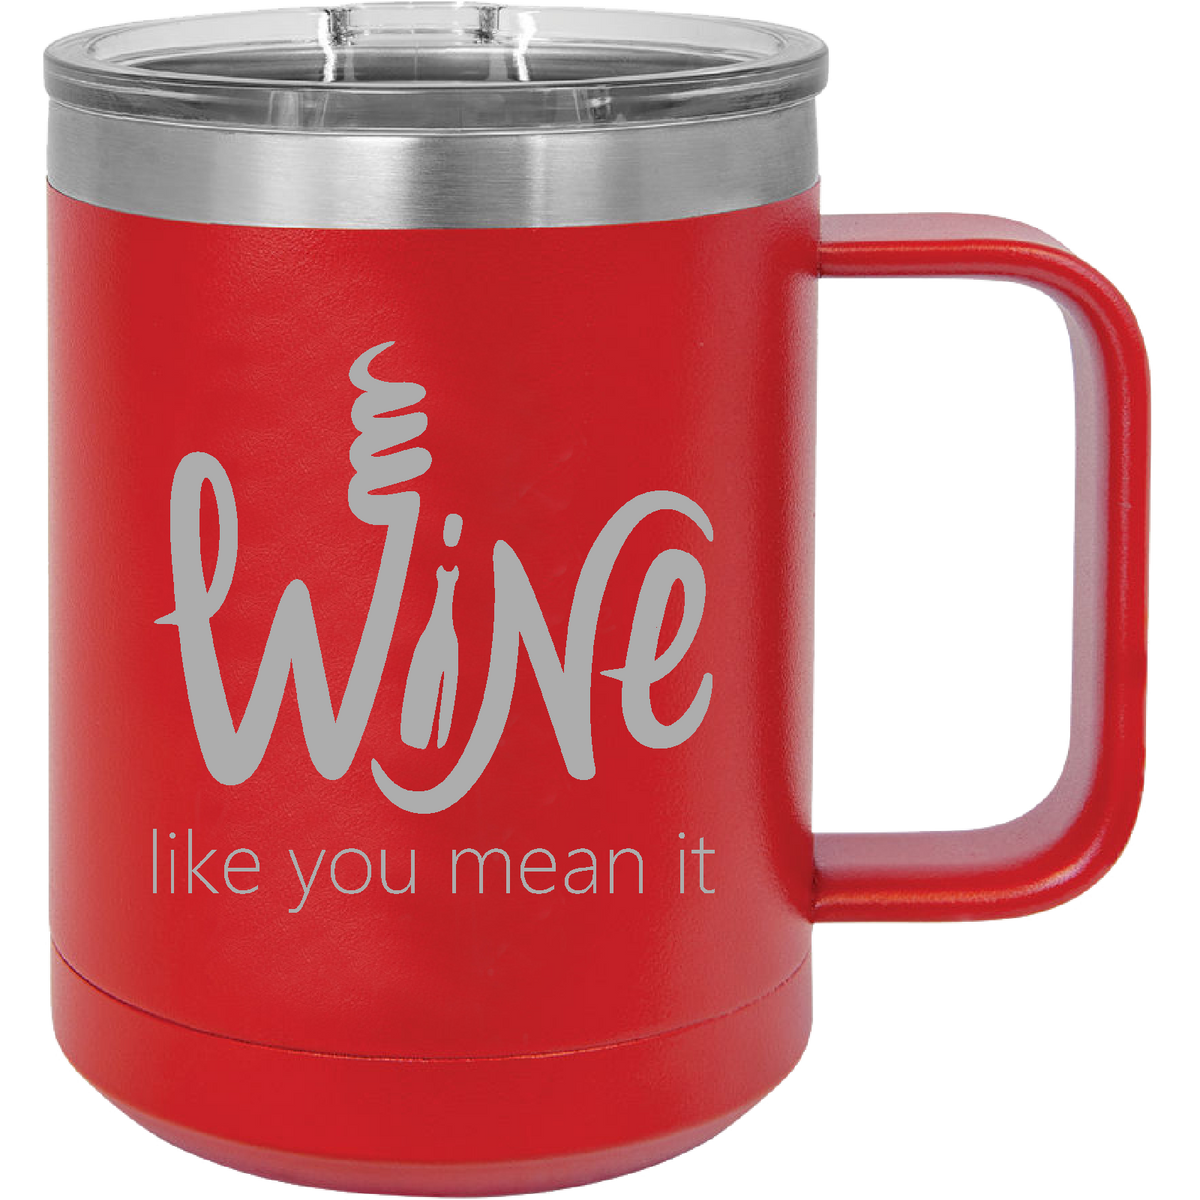 Wine like you mean it - 15oz. Engraved Travel Mug with Sliding Lid